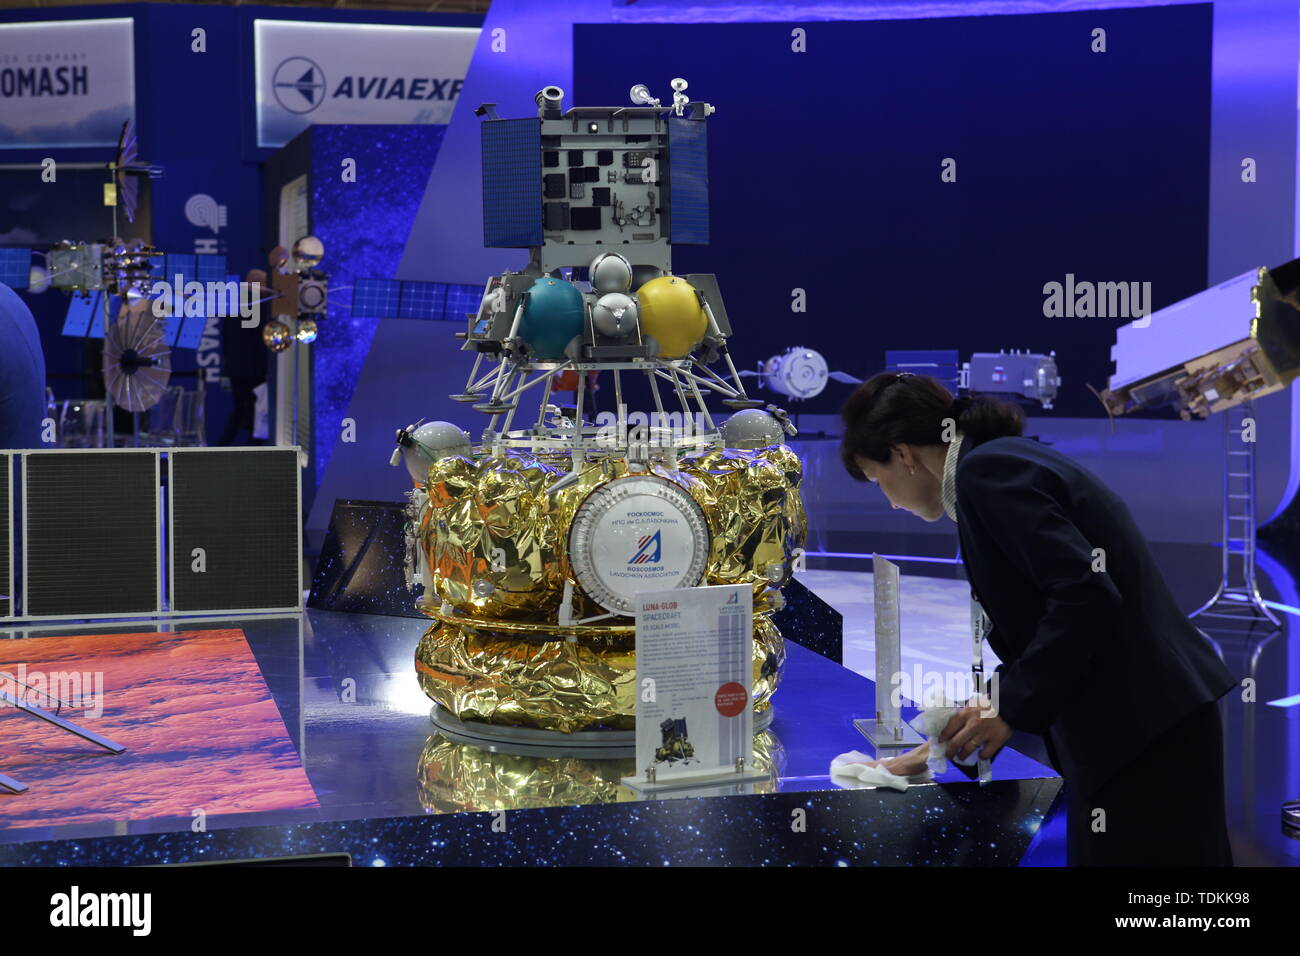 Paris, France. 17th June, 2019.  A scale model of the Luna-Glob spacecraft, developed by Roscosmos, on display at the 2019 Paris Air Show opened at Le Bourget Airport. Marina Lystseva/TASS Credit: ITAR-TASS News Agency/Alamy Live News Credit: ITAR-TASS News Agency/Alamy Live News - Stock Image